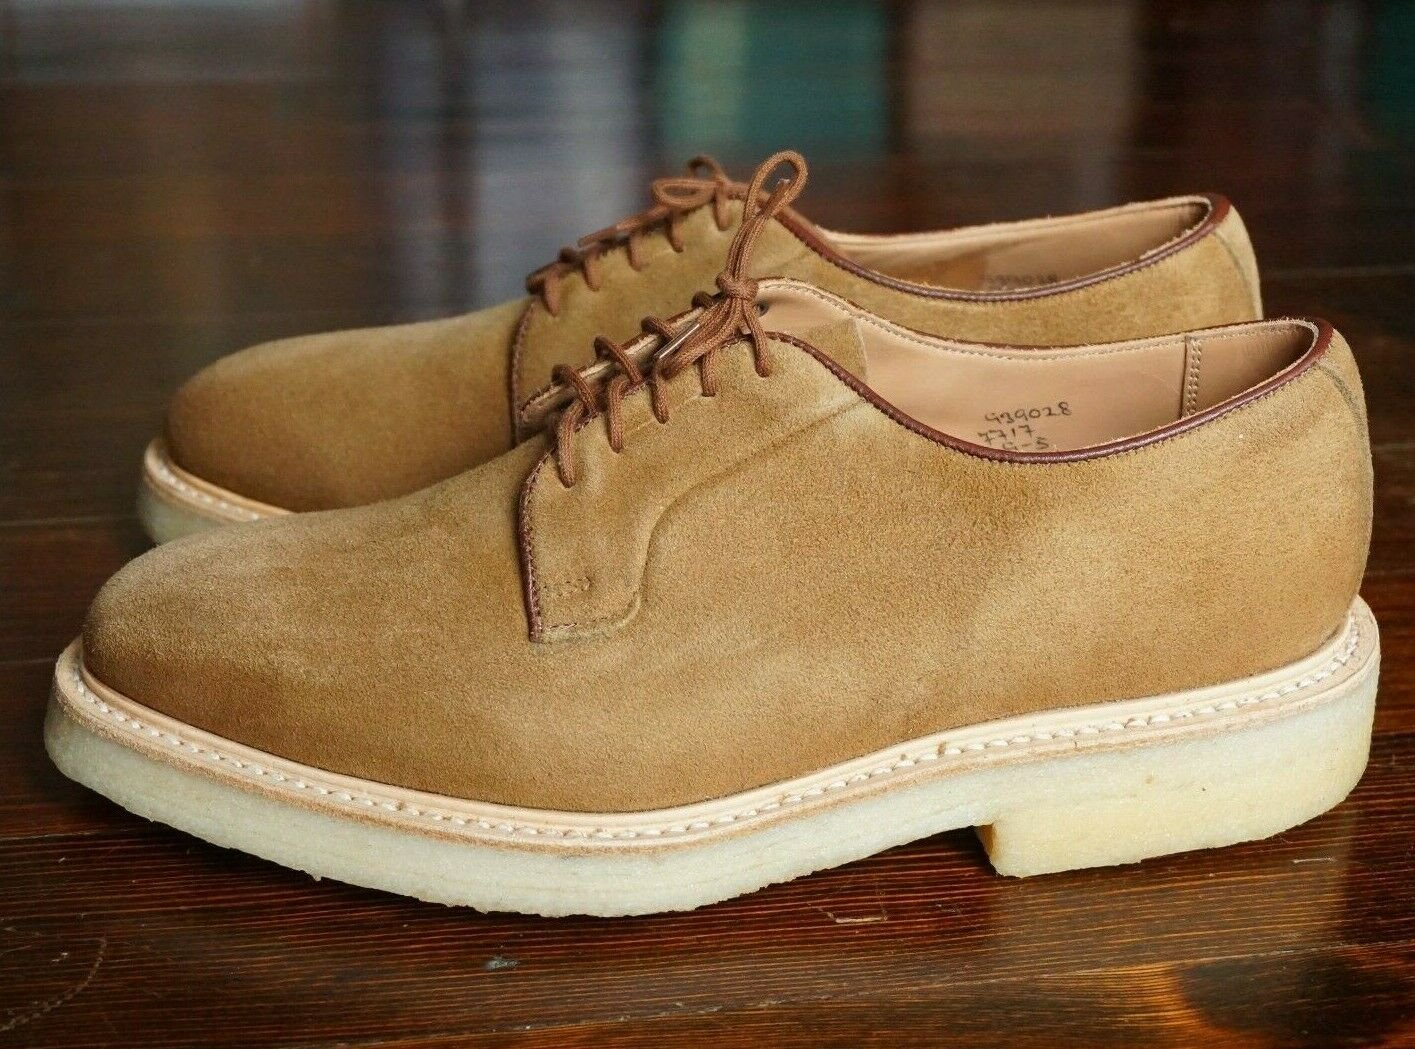 NEW WITH BOX   TRICKERS US 10 ROBERT PLAIN TOE DERBY TAN KUDU SUEDE 81 LAST